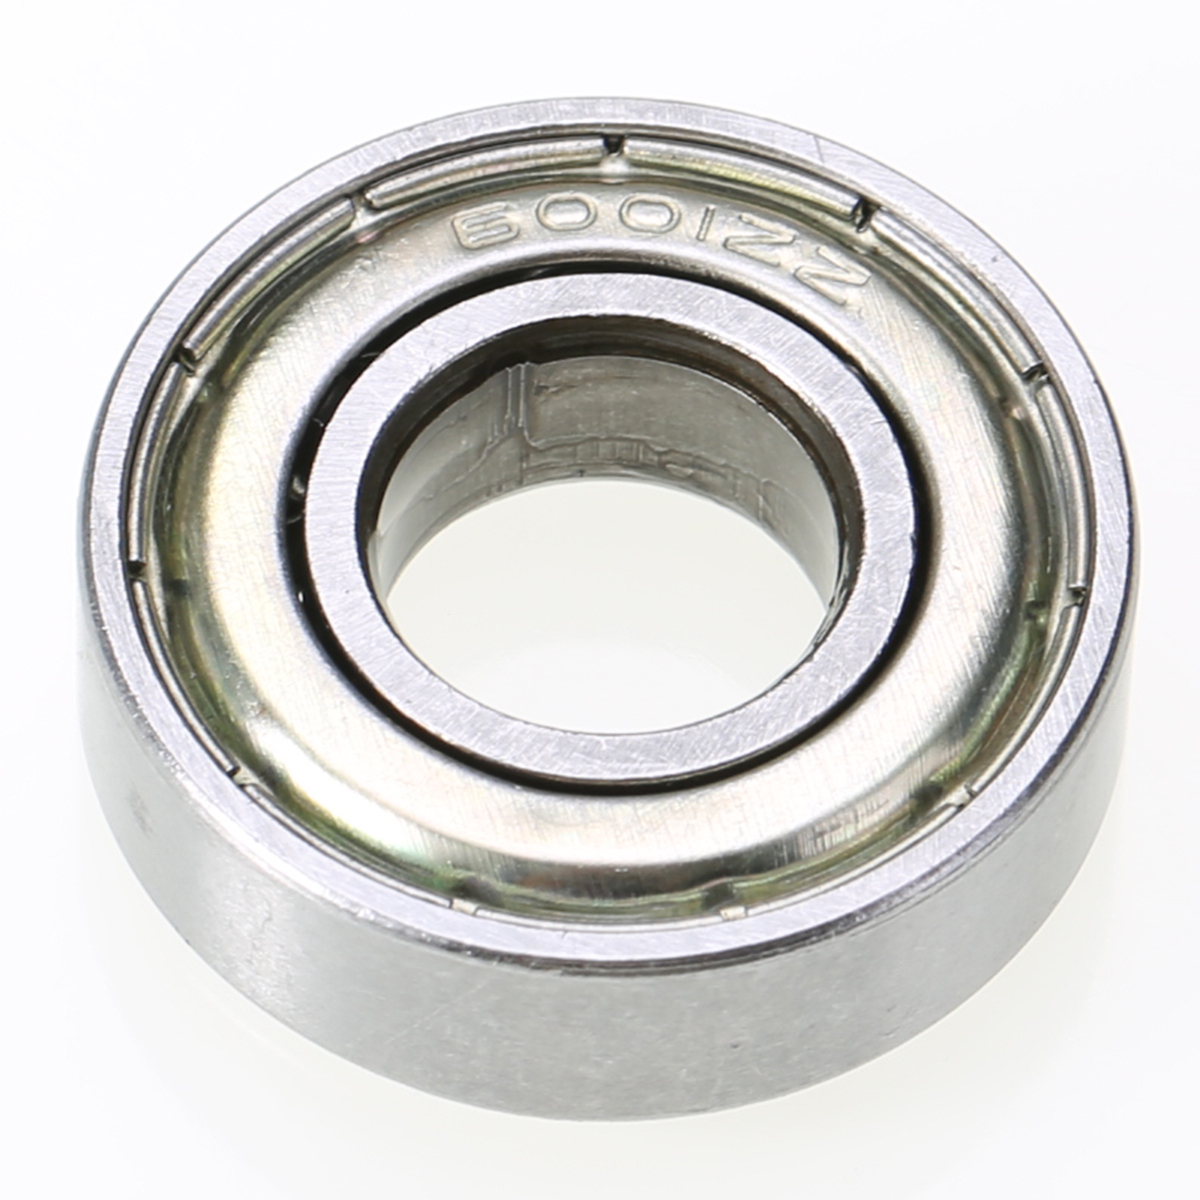 5pcs Mayitr Miniature Deep Groove Radial Bearings High Precision 6001ZZ Shielded Ball Bearing 12*28*8mm for Electric Motors Whee gcr15 6326 open 130x280x58mm high precision deep groove ball bearings abec 1 p0